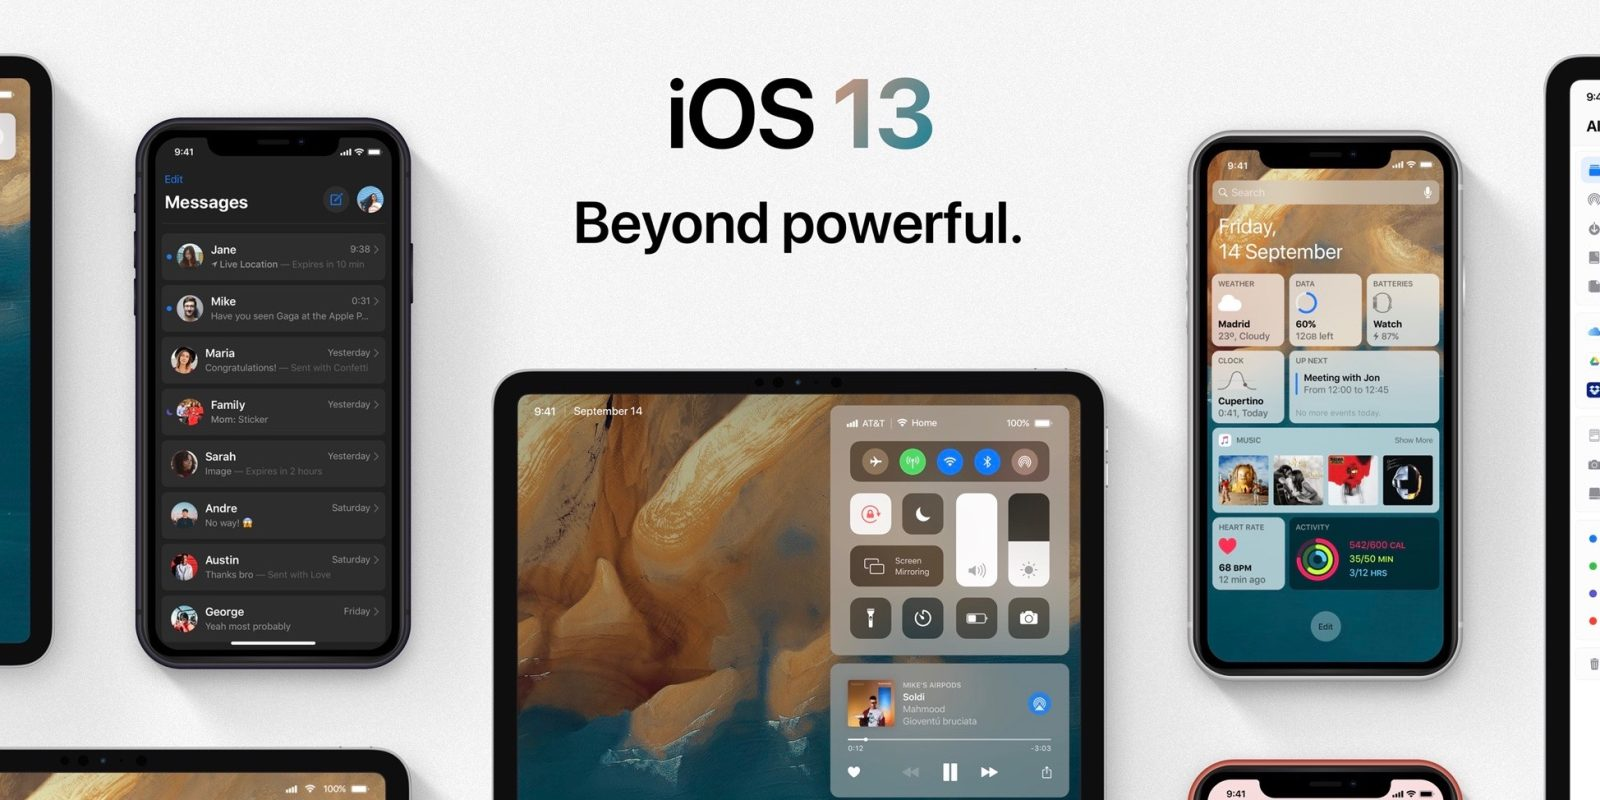 Top Features Of iOS 13 That Will Make Your Life Easier 1